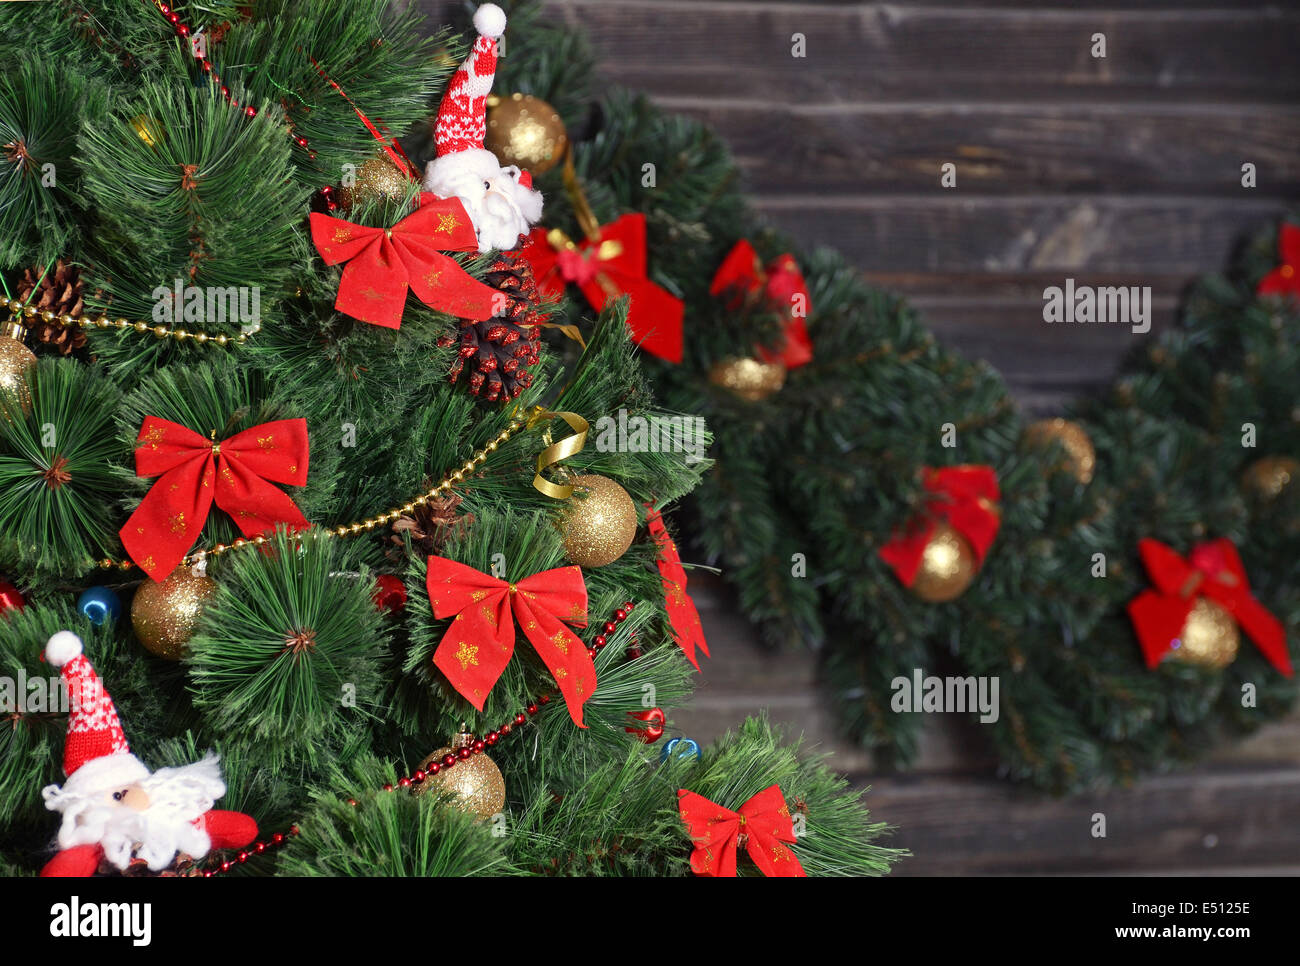 Vintage Country Christmas Tree High Resolution Stock Photography And Images Alamy